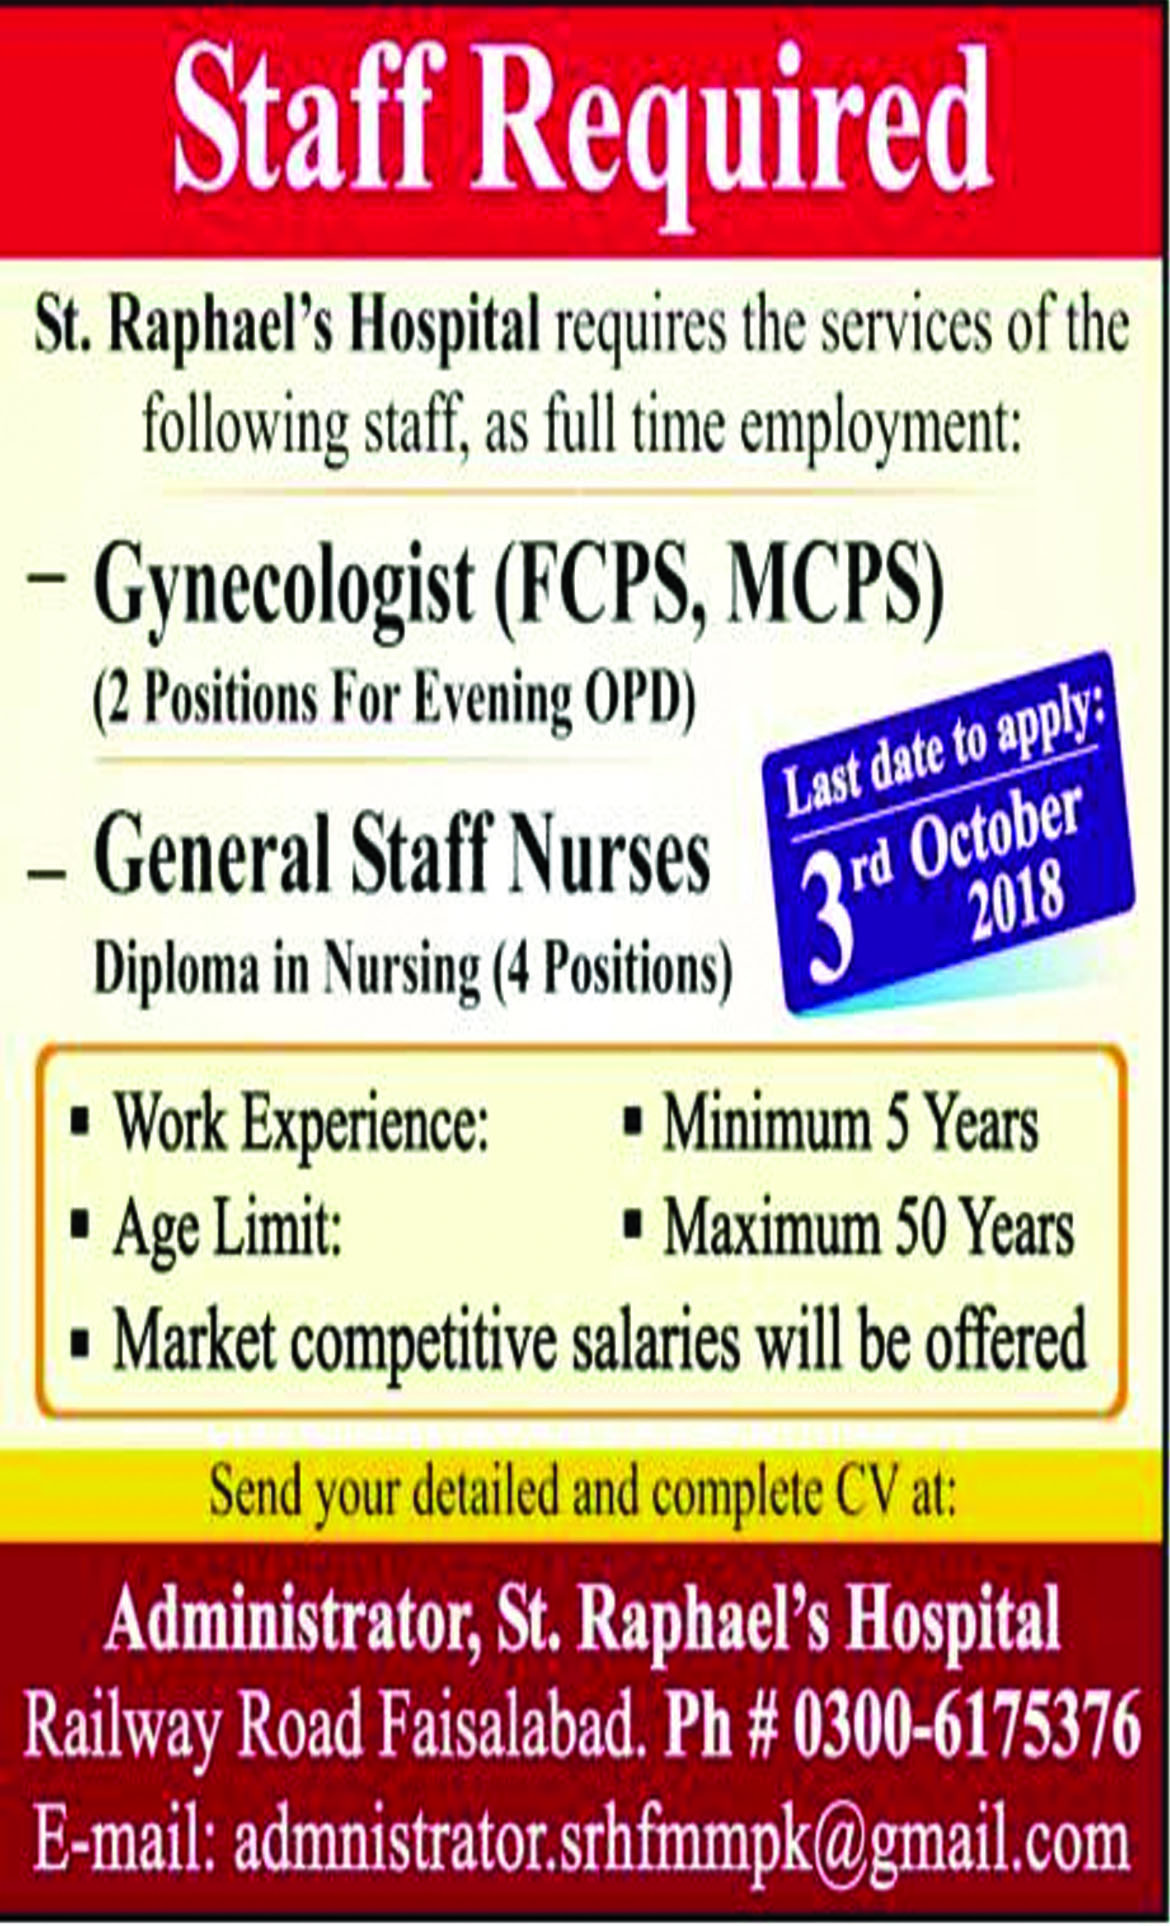 Jobs In Gynecologist, General Staff Nurses Required 26 Sep 2018